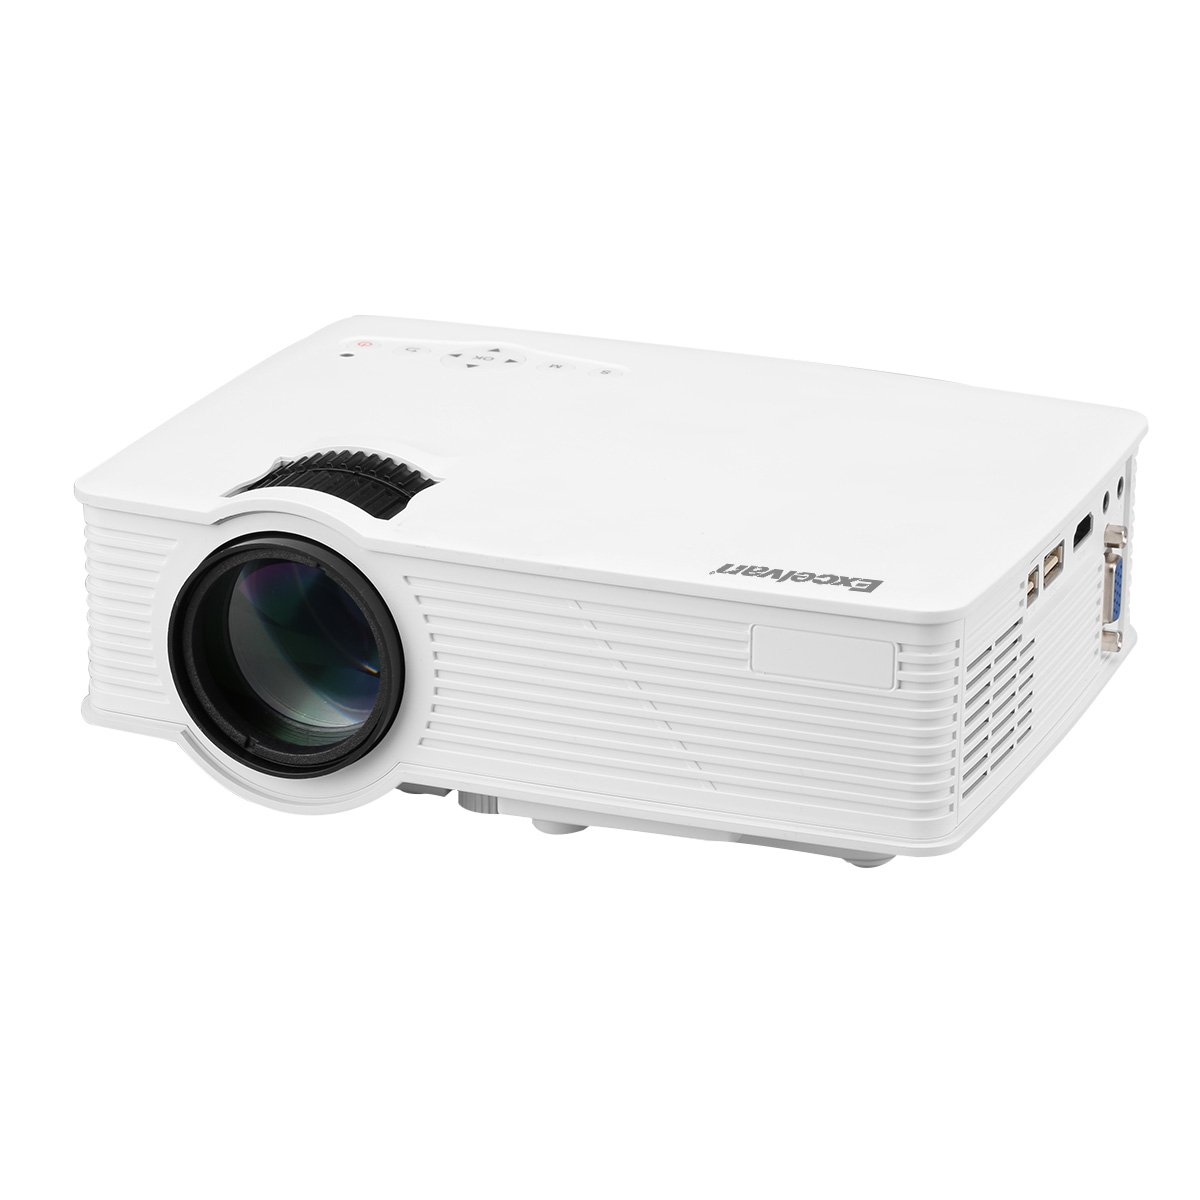 Excelvan EHD09 Mini LED Multimedia Home Theater Projector 1200 Lumens 1080P HDMI/USB/SD/AV/VGA Interface Ideal for Video Games,Movie Night,Family ...